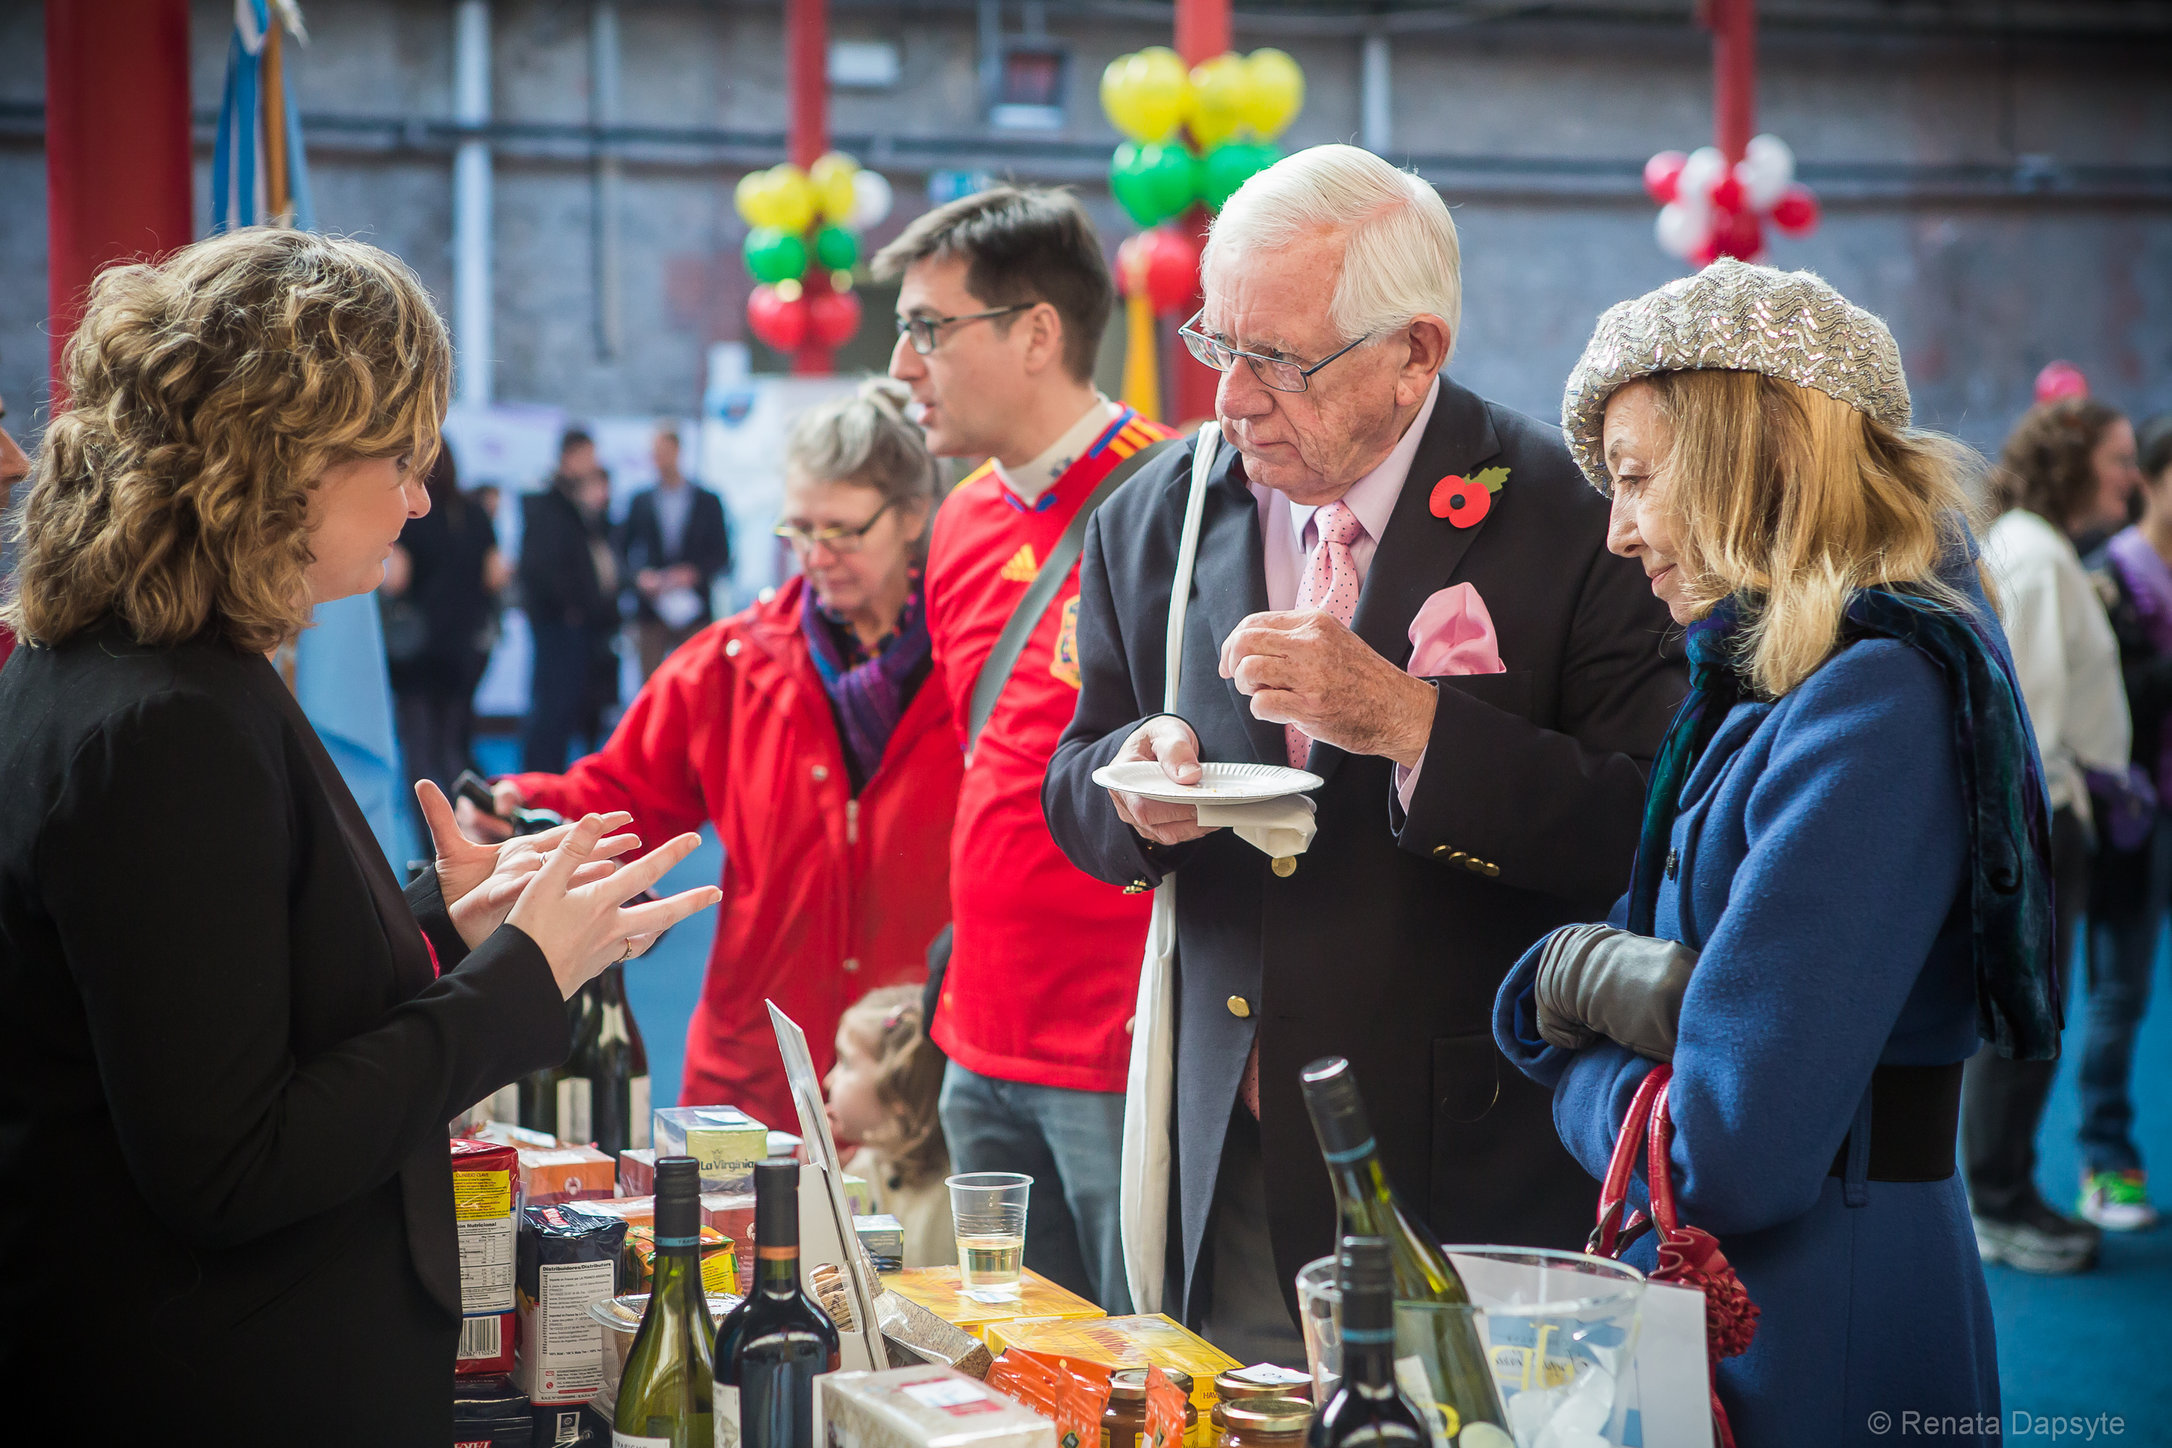 064_International Charity Bazaar Dublin 2013.JPG